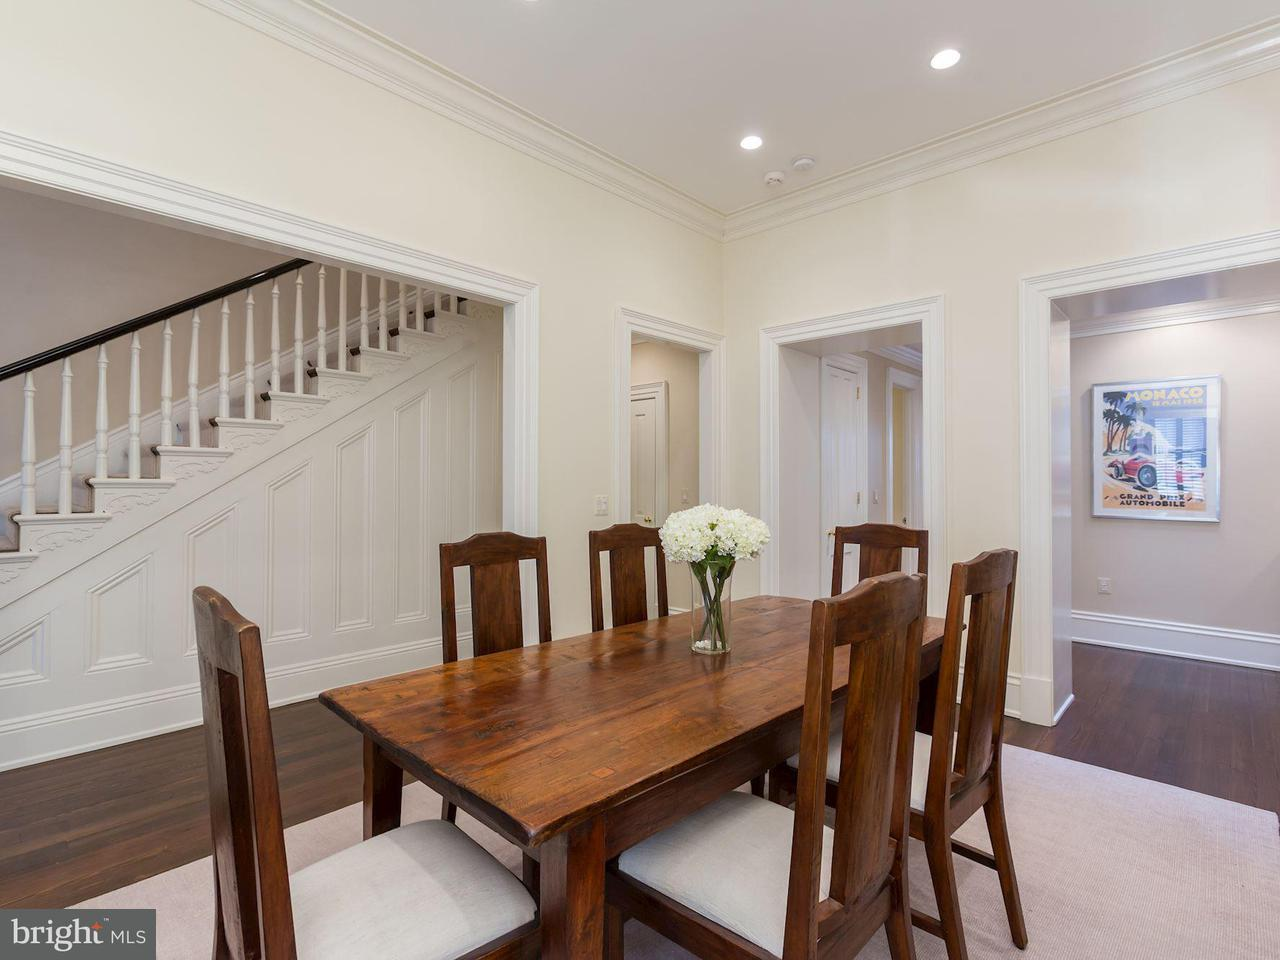 Additional photo for property listing at 3007 P St NW  Washington, District Of Columbia 20007 United States